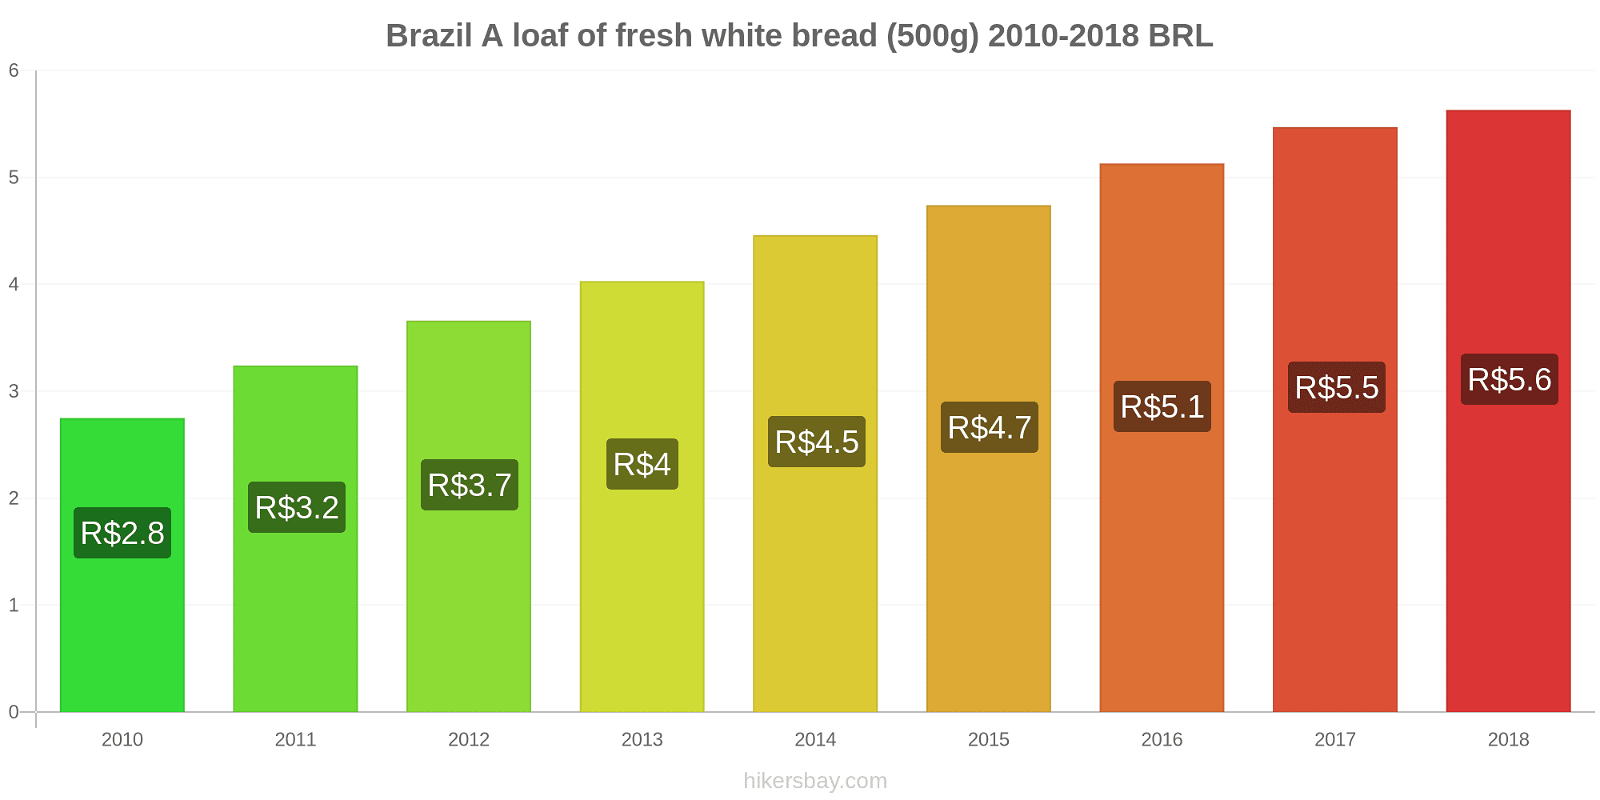 Brazil price changes A loaf of fresh white bread (500g) hikersbay.com